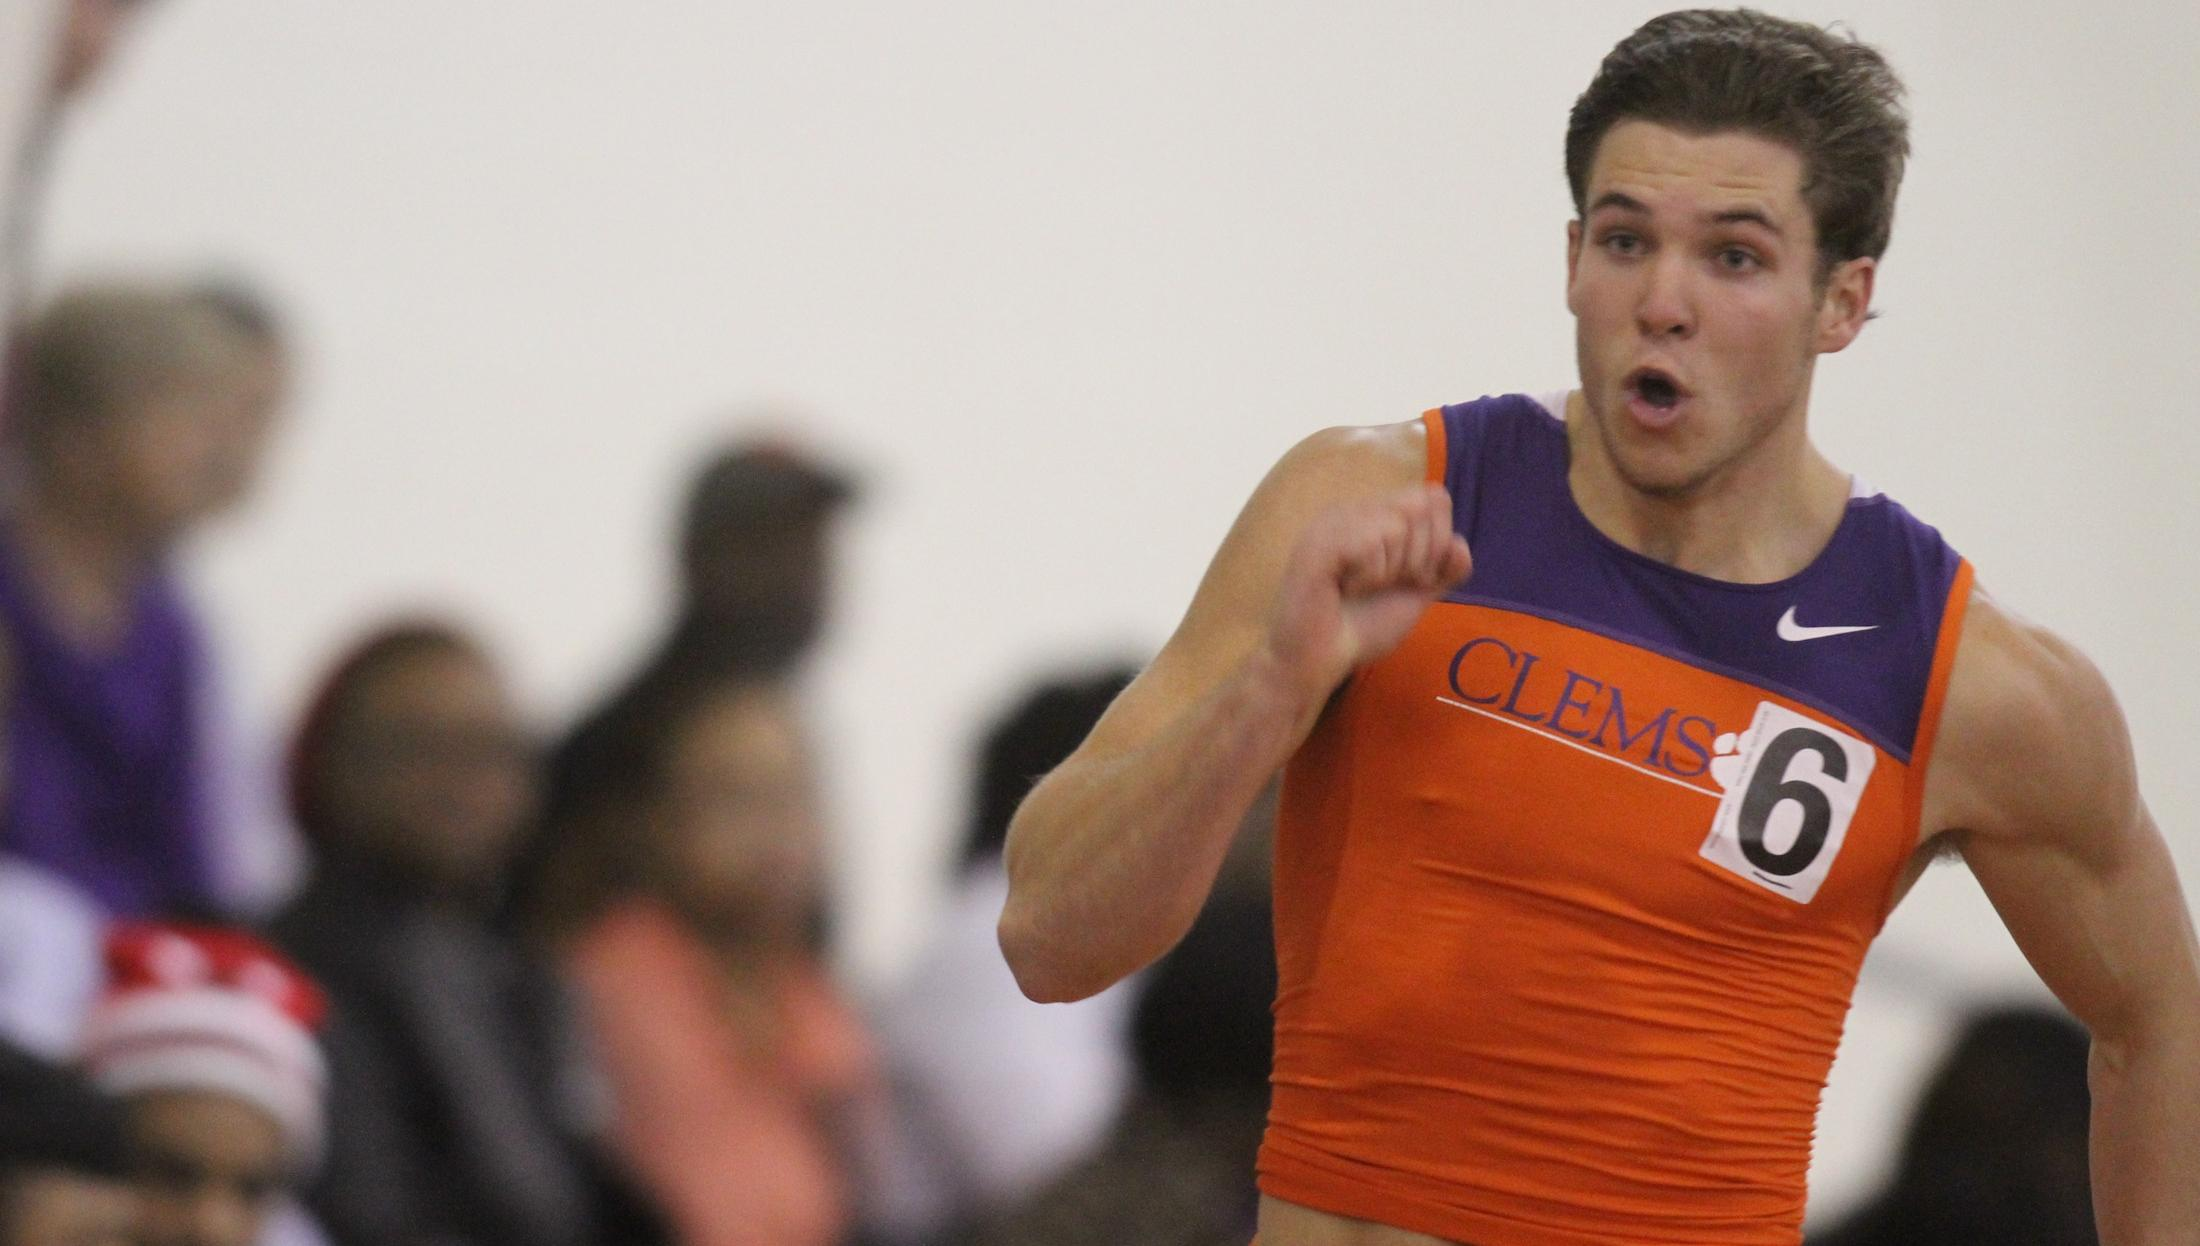 Clemson Track & Field Heads to Greensboro for NCAA East Prelims